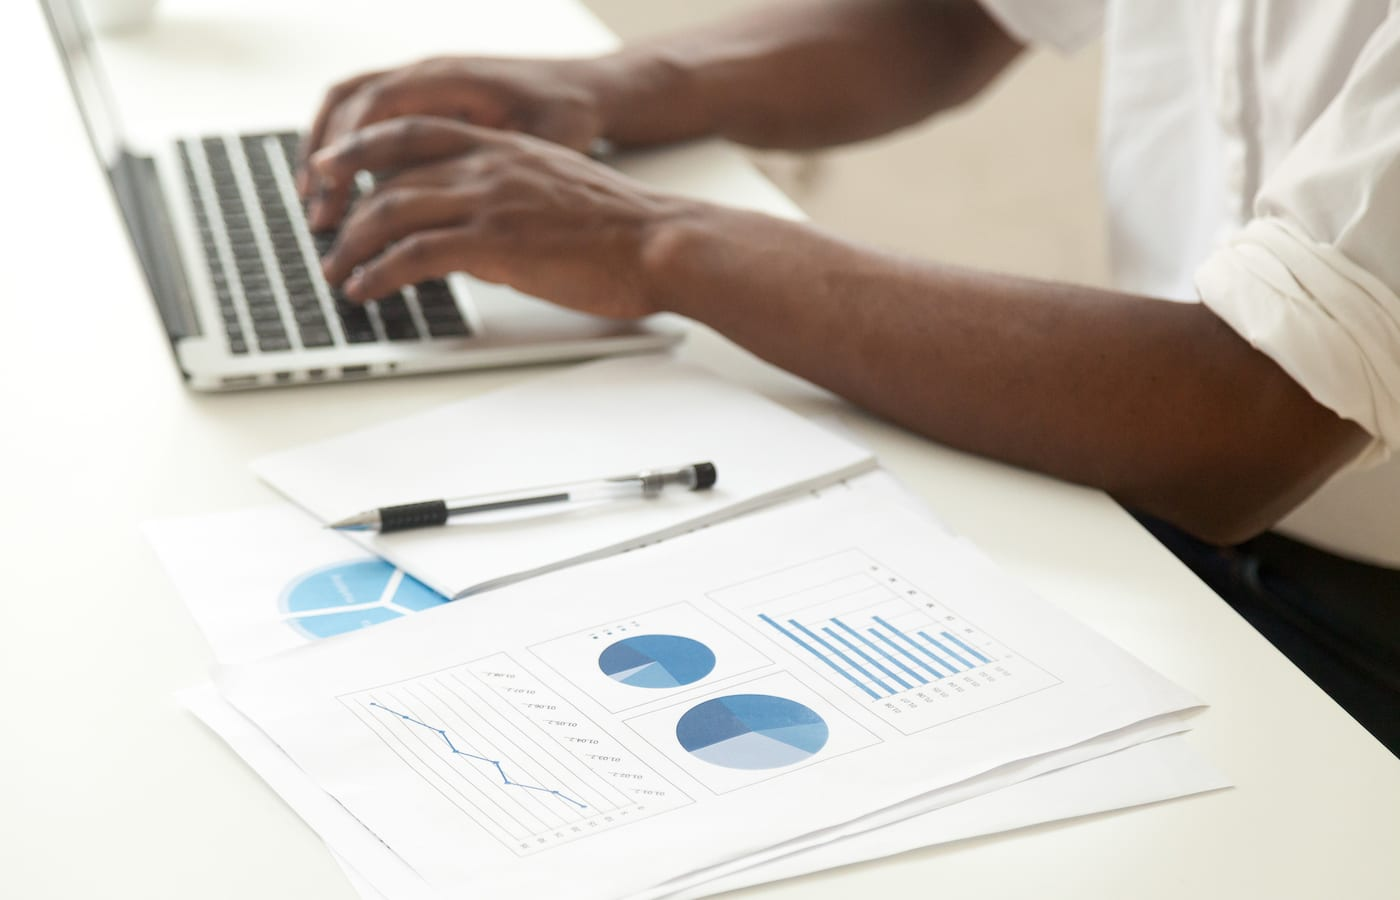 Five Essential Tips for Data Analysis Success